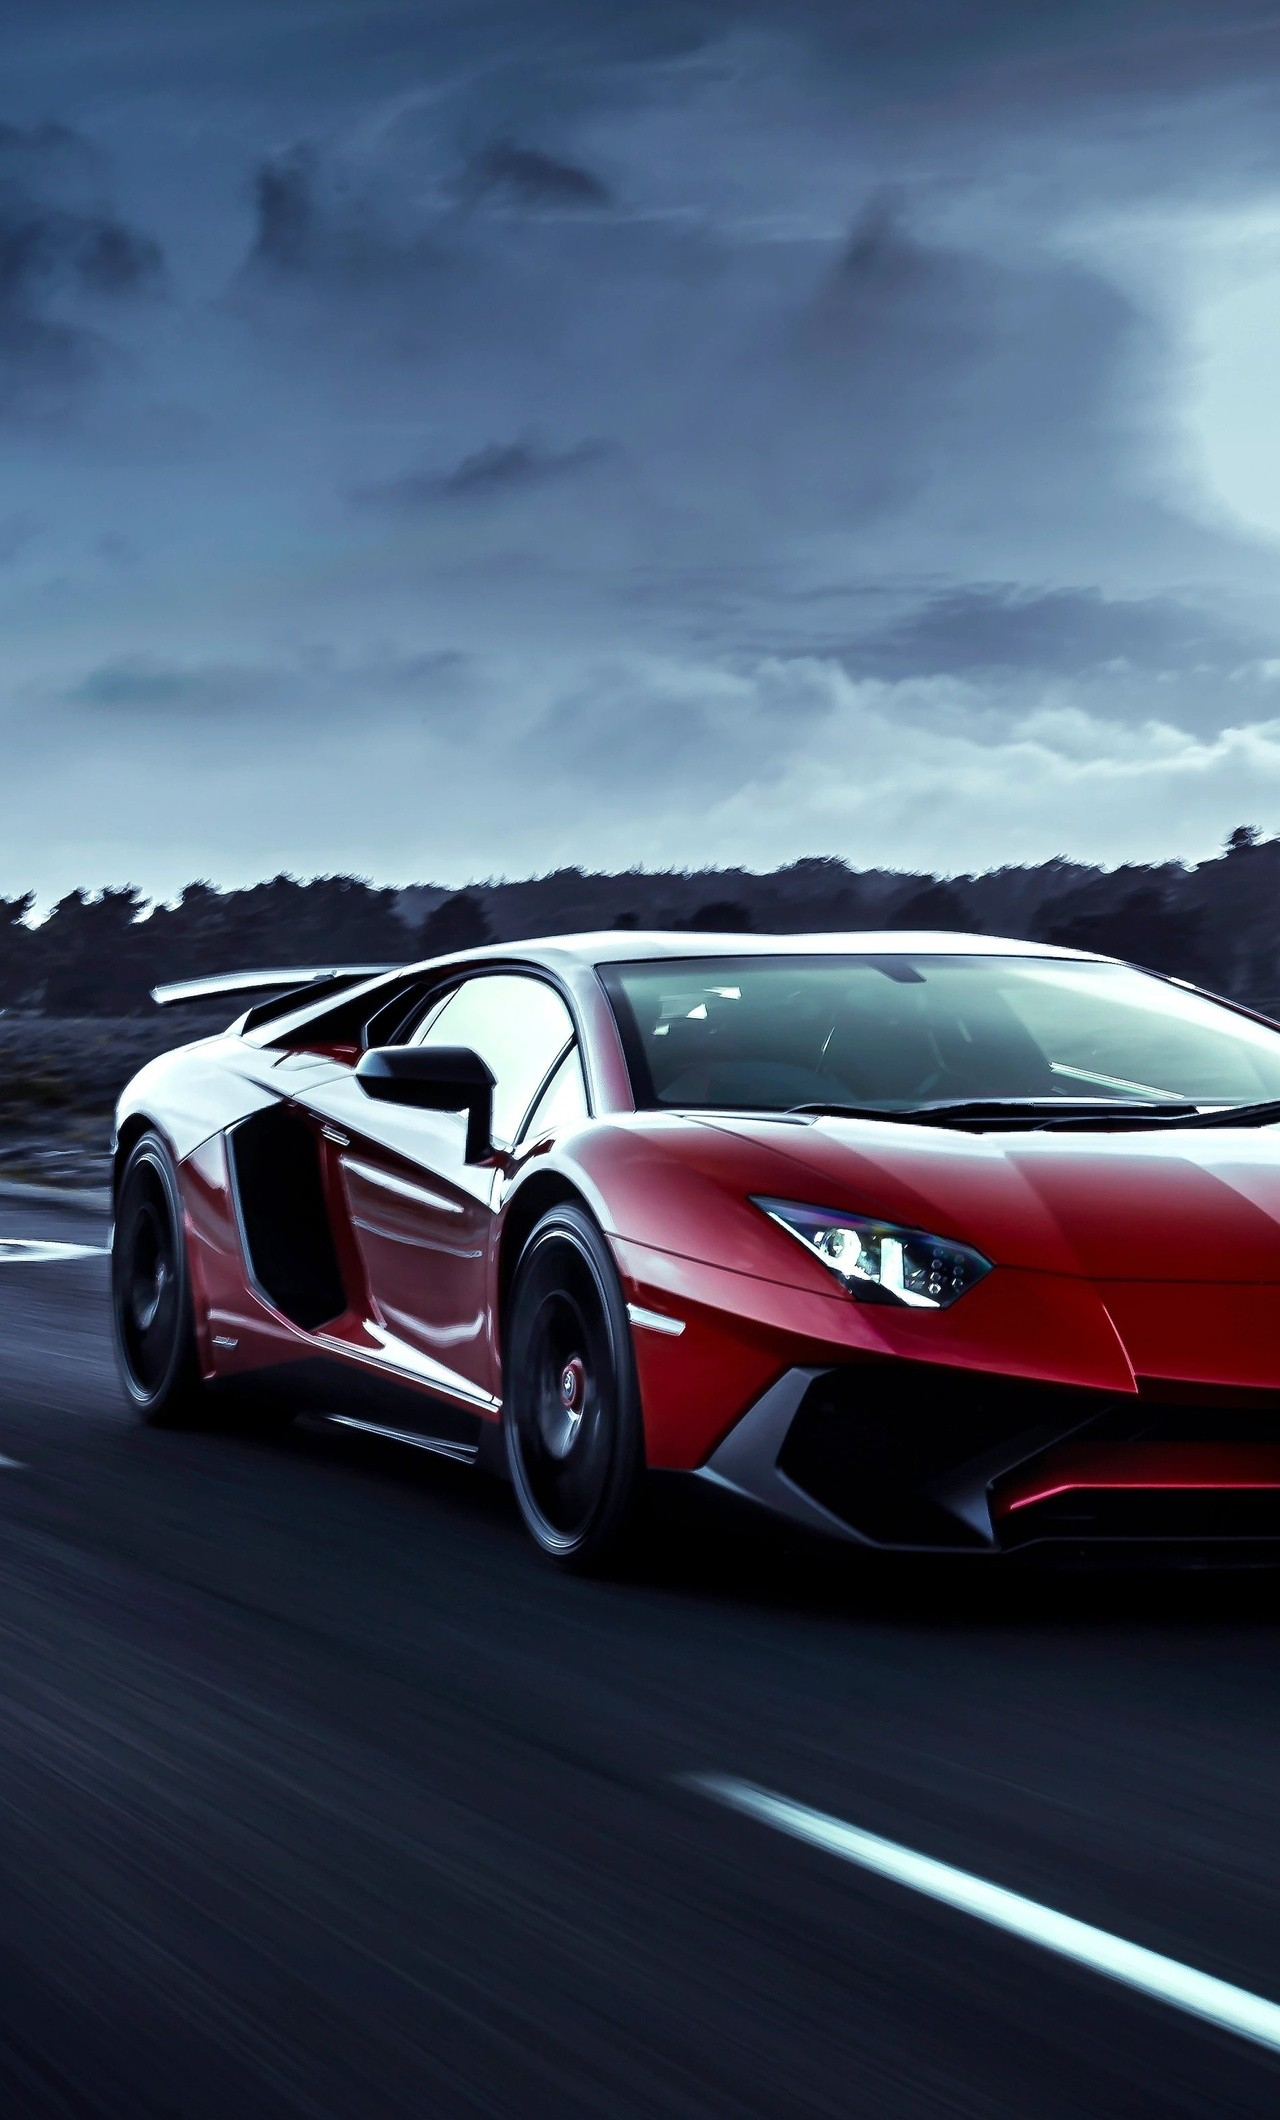 Iphone Lamborghini Wallpaper 2